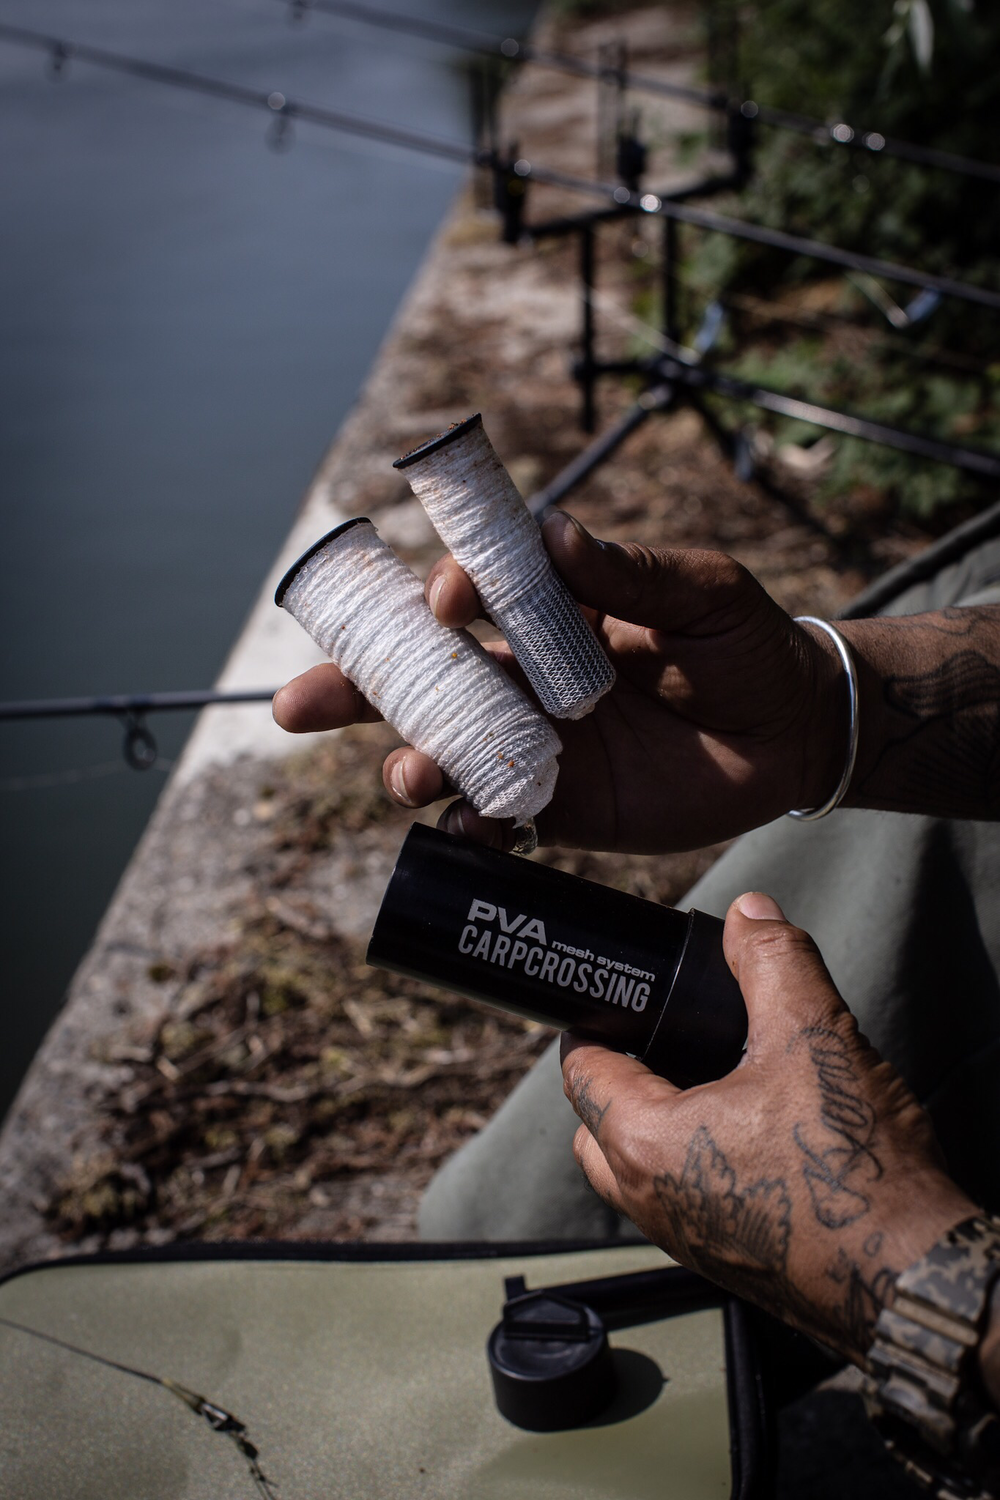 CARPCROSSING PVA MESH SYSTEM 25/35mm